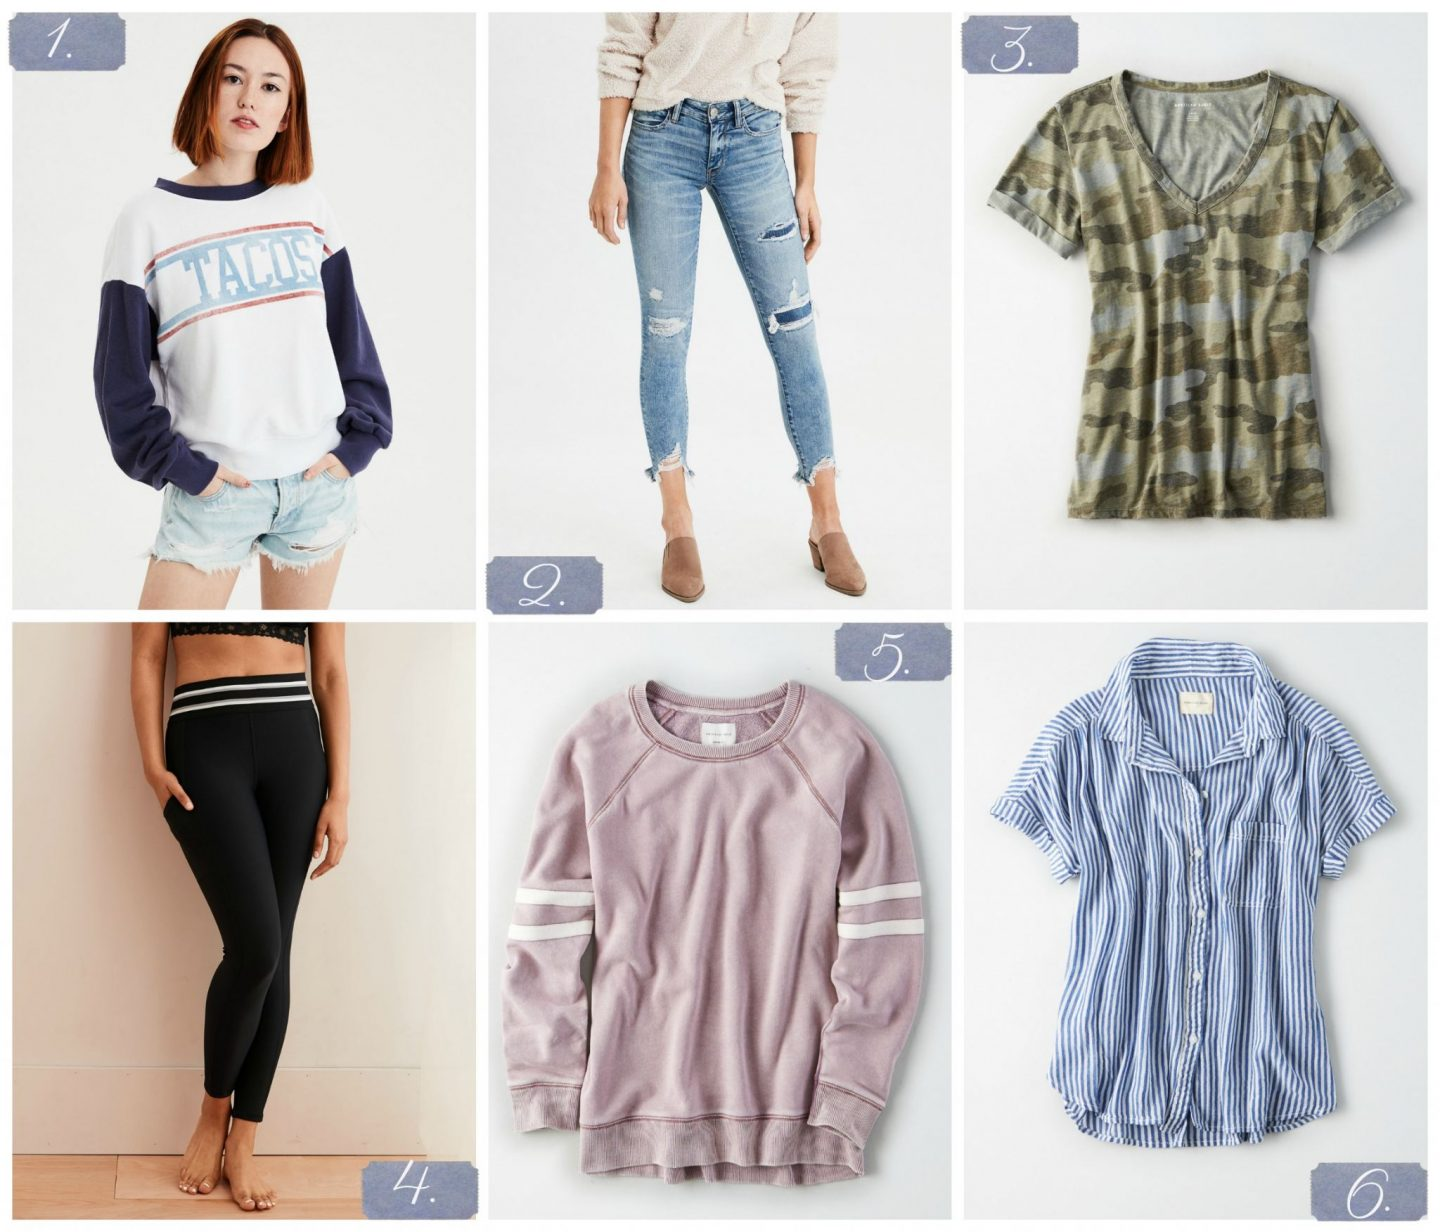 Tuesday's Cravings: Spring at American Eagle and Aerie